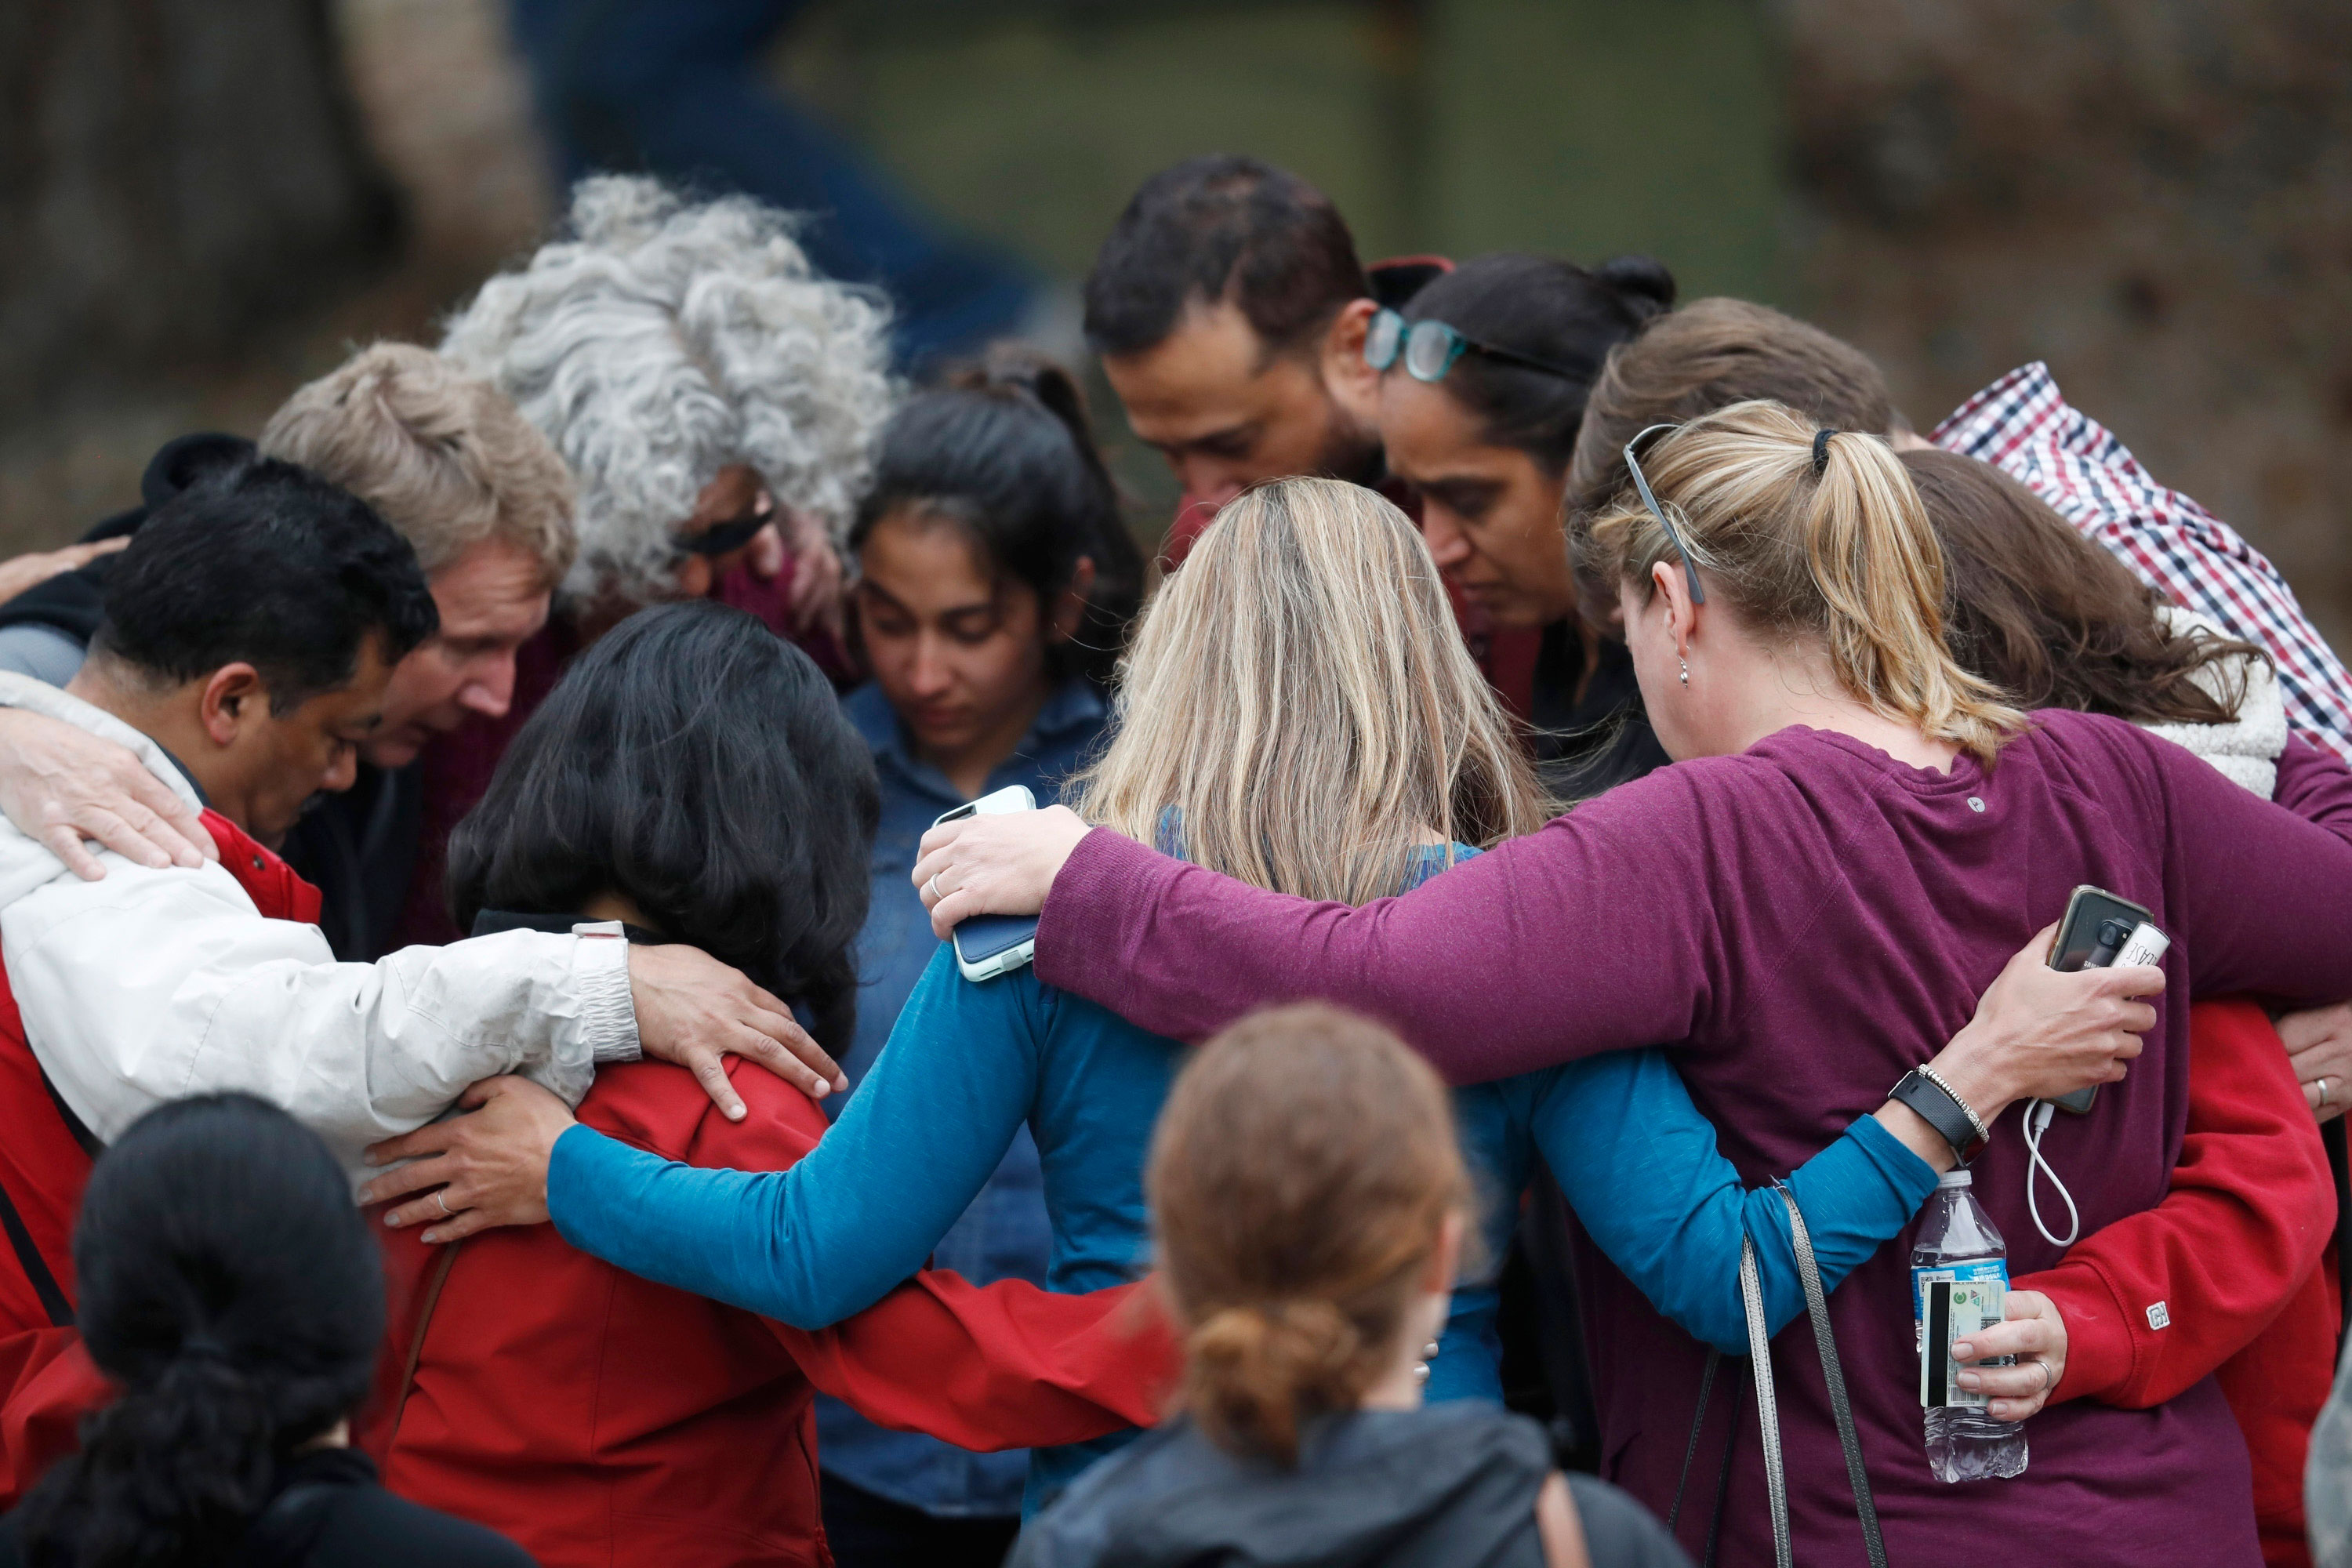 <p>Parents gather in a circle to pray at a recreation center where students were reunited with their parents after a shooting at a suburban Denver middle school Tuesday, May 7, 2019, in Highlands Ranch, Colo.</p>